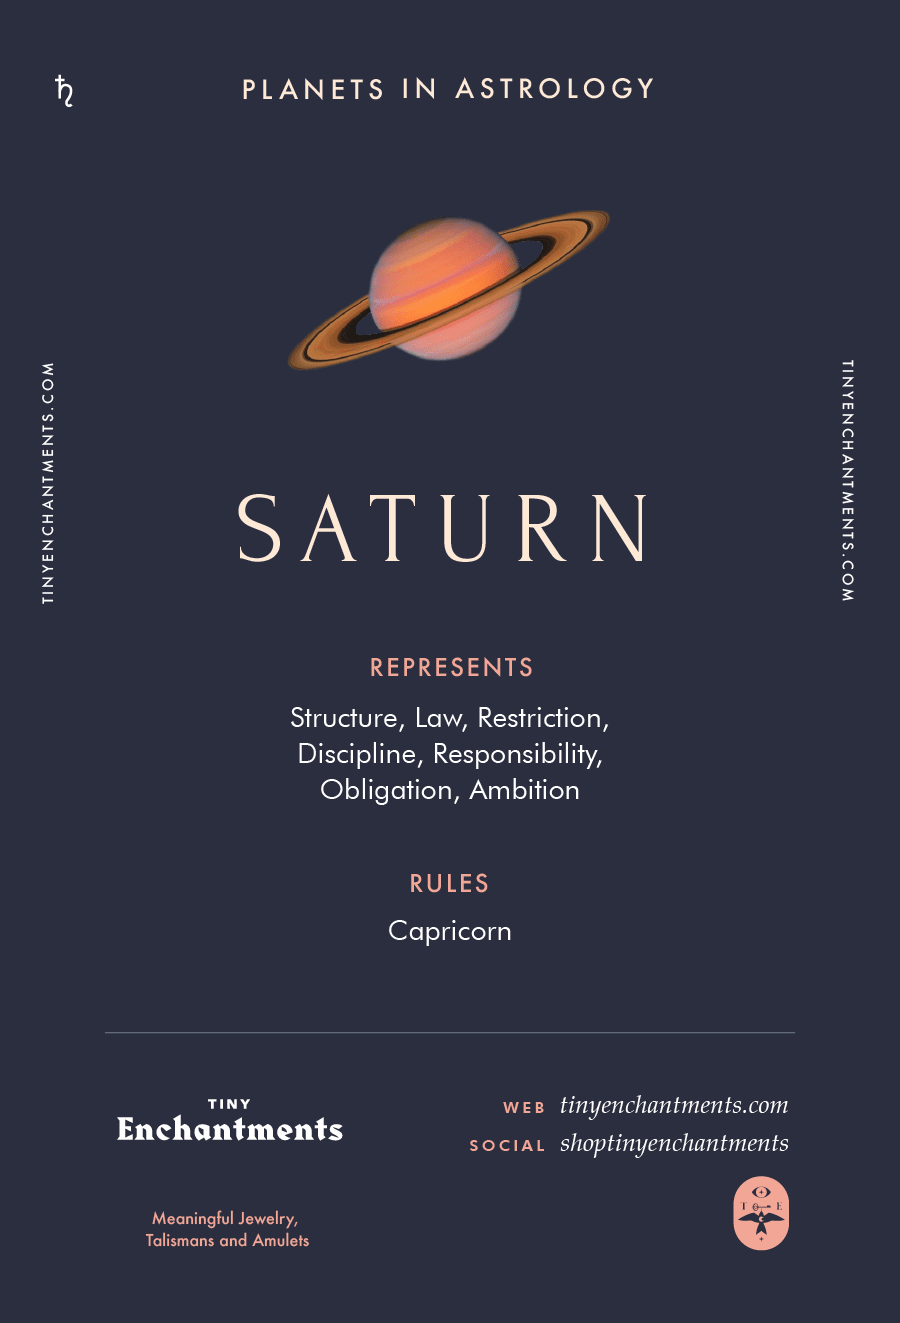 Saturn Sign in Astrology - Planet Meaning, Zodiac, Symbolism, Characteristics Infographic